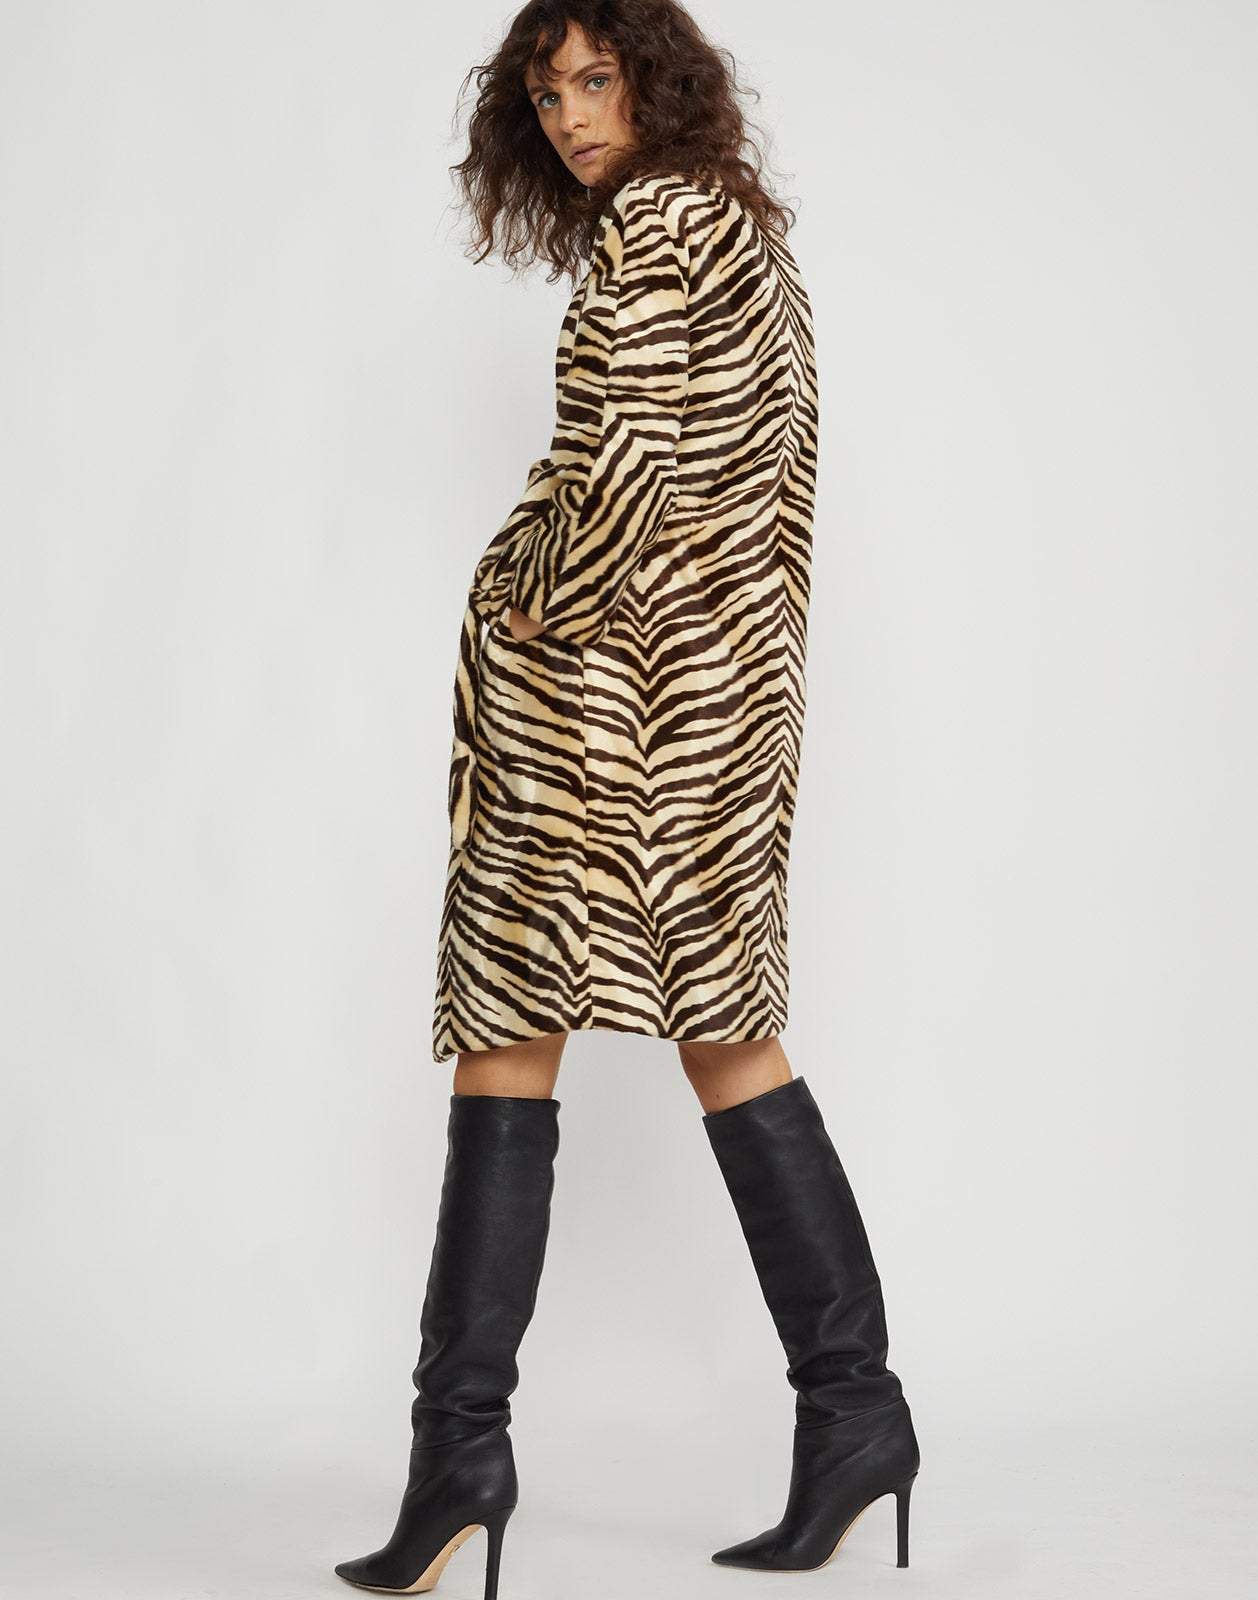 Back view of the faux fur zebra print coat.